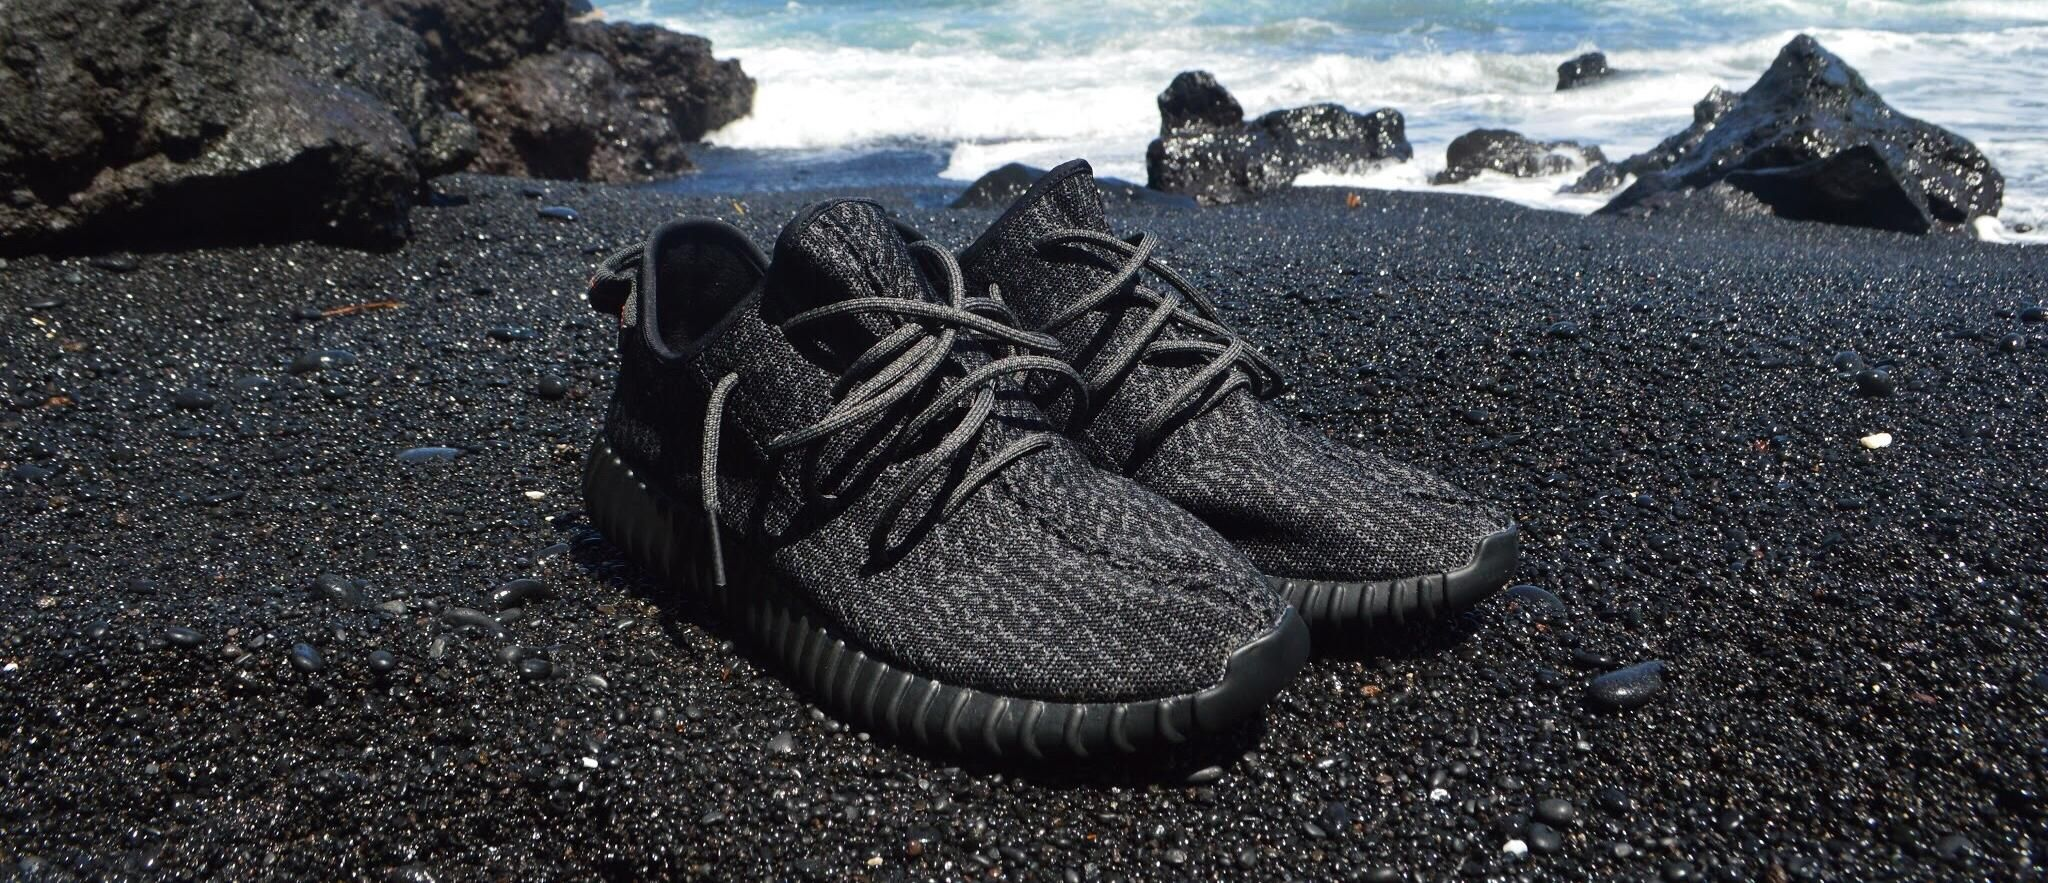 17b17913d524 Yeezy 350 Boost Pirate Black  2048 x 883 . wallpaper  background for iPad  mini  air  2   pro  laptop  dquocbuu